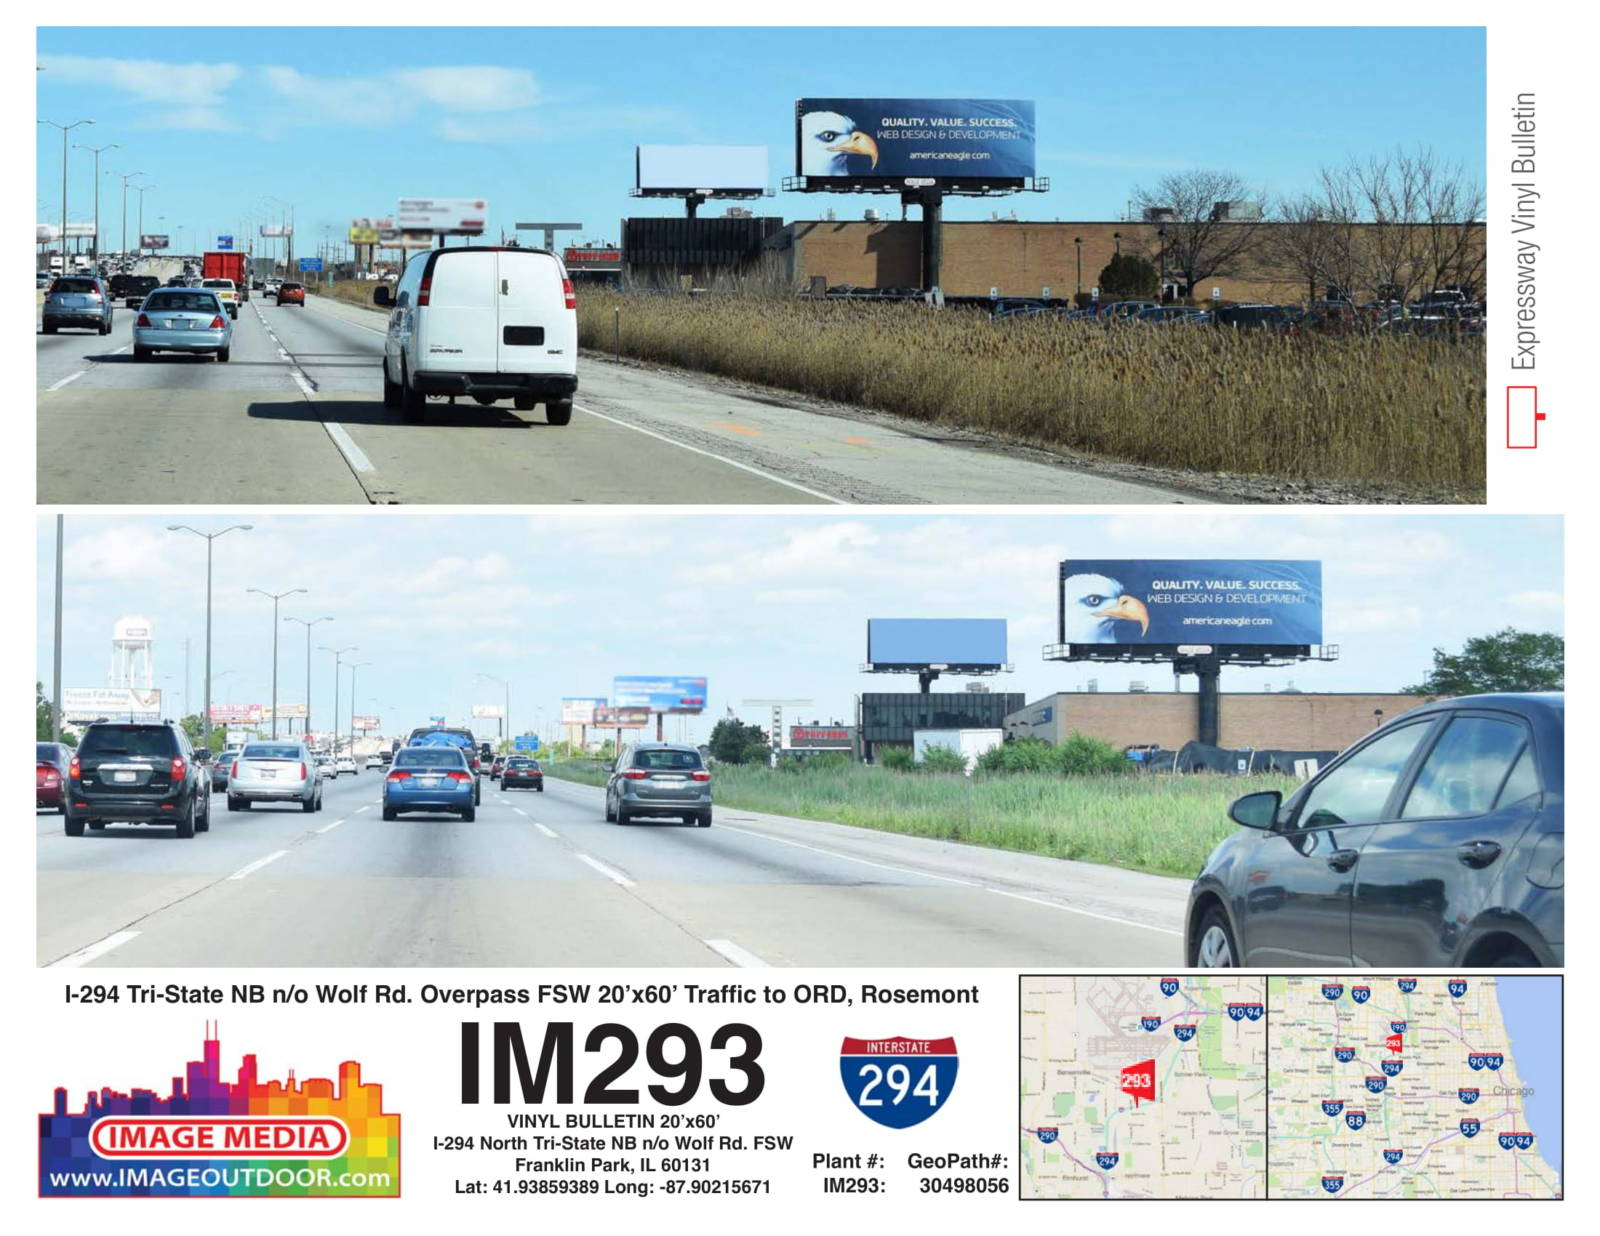 IM293 - bulletin on I-294 northbound north of Wolf Rd.